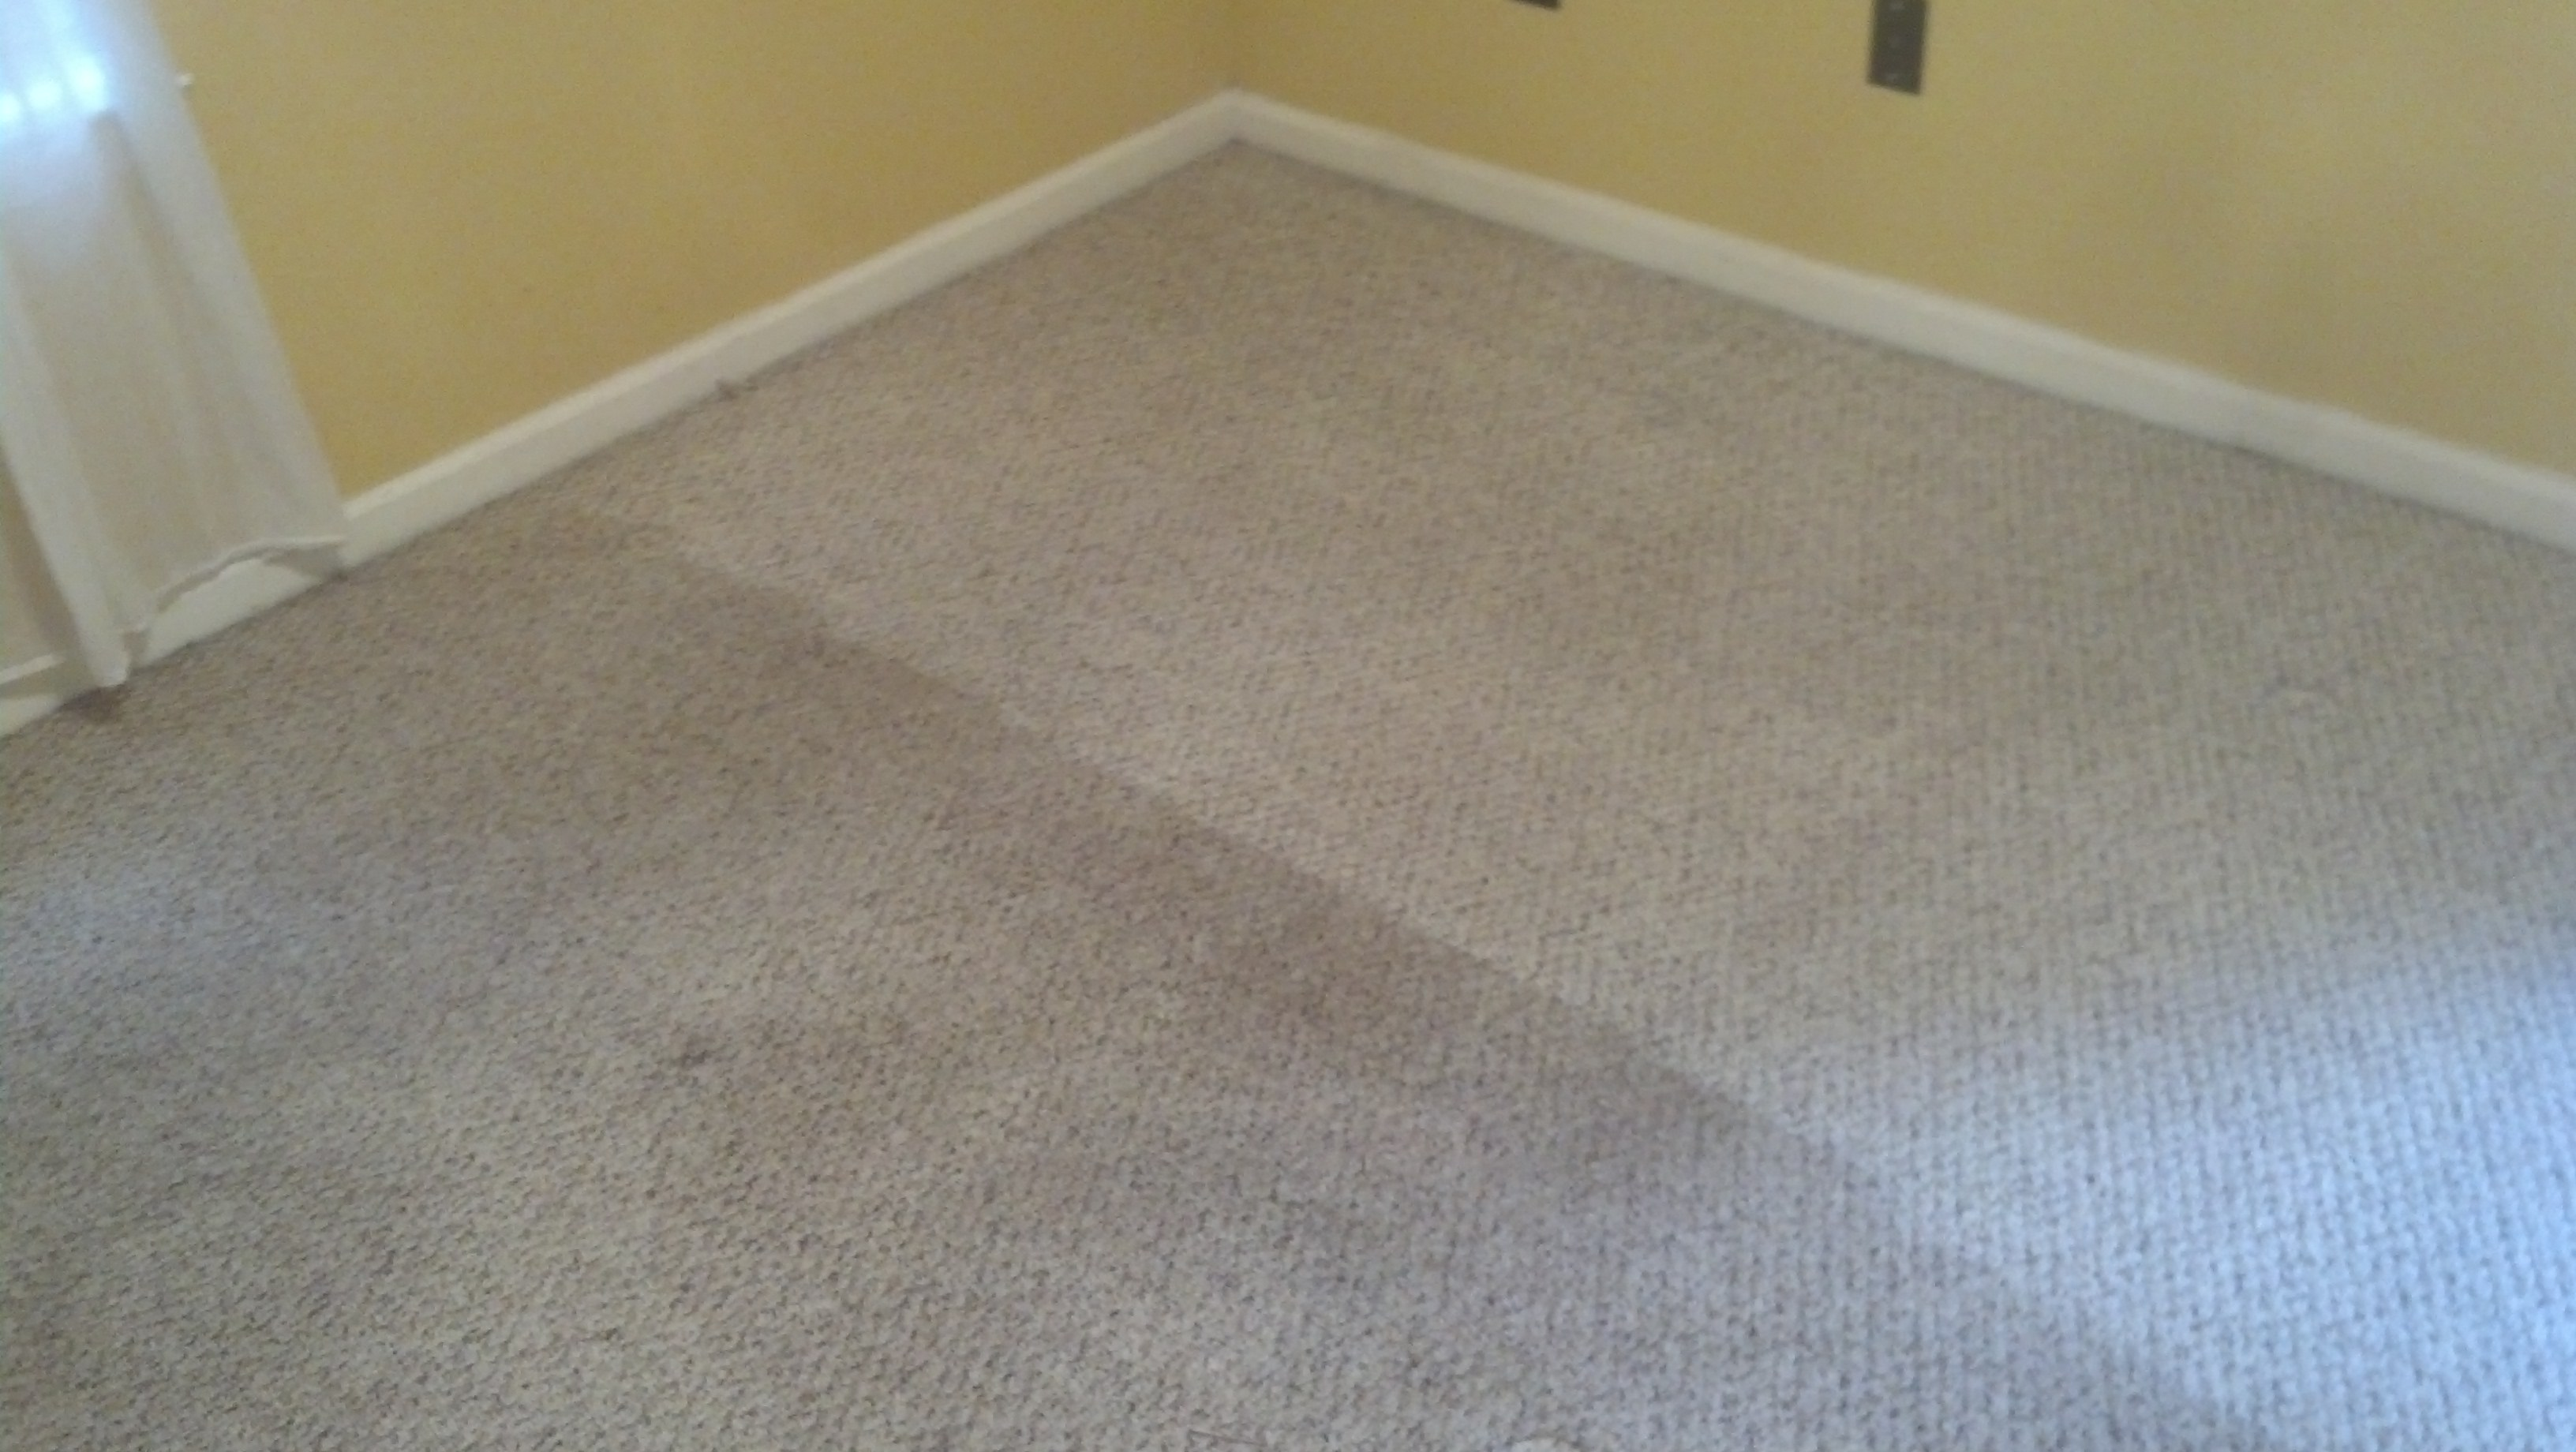 Carpet Cleaning Carpet Cleaning Company Peachtree City Fayetteville